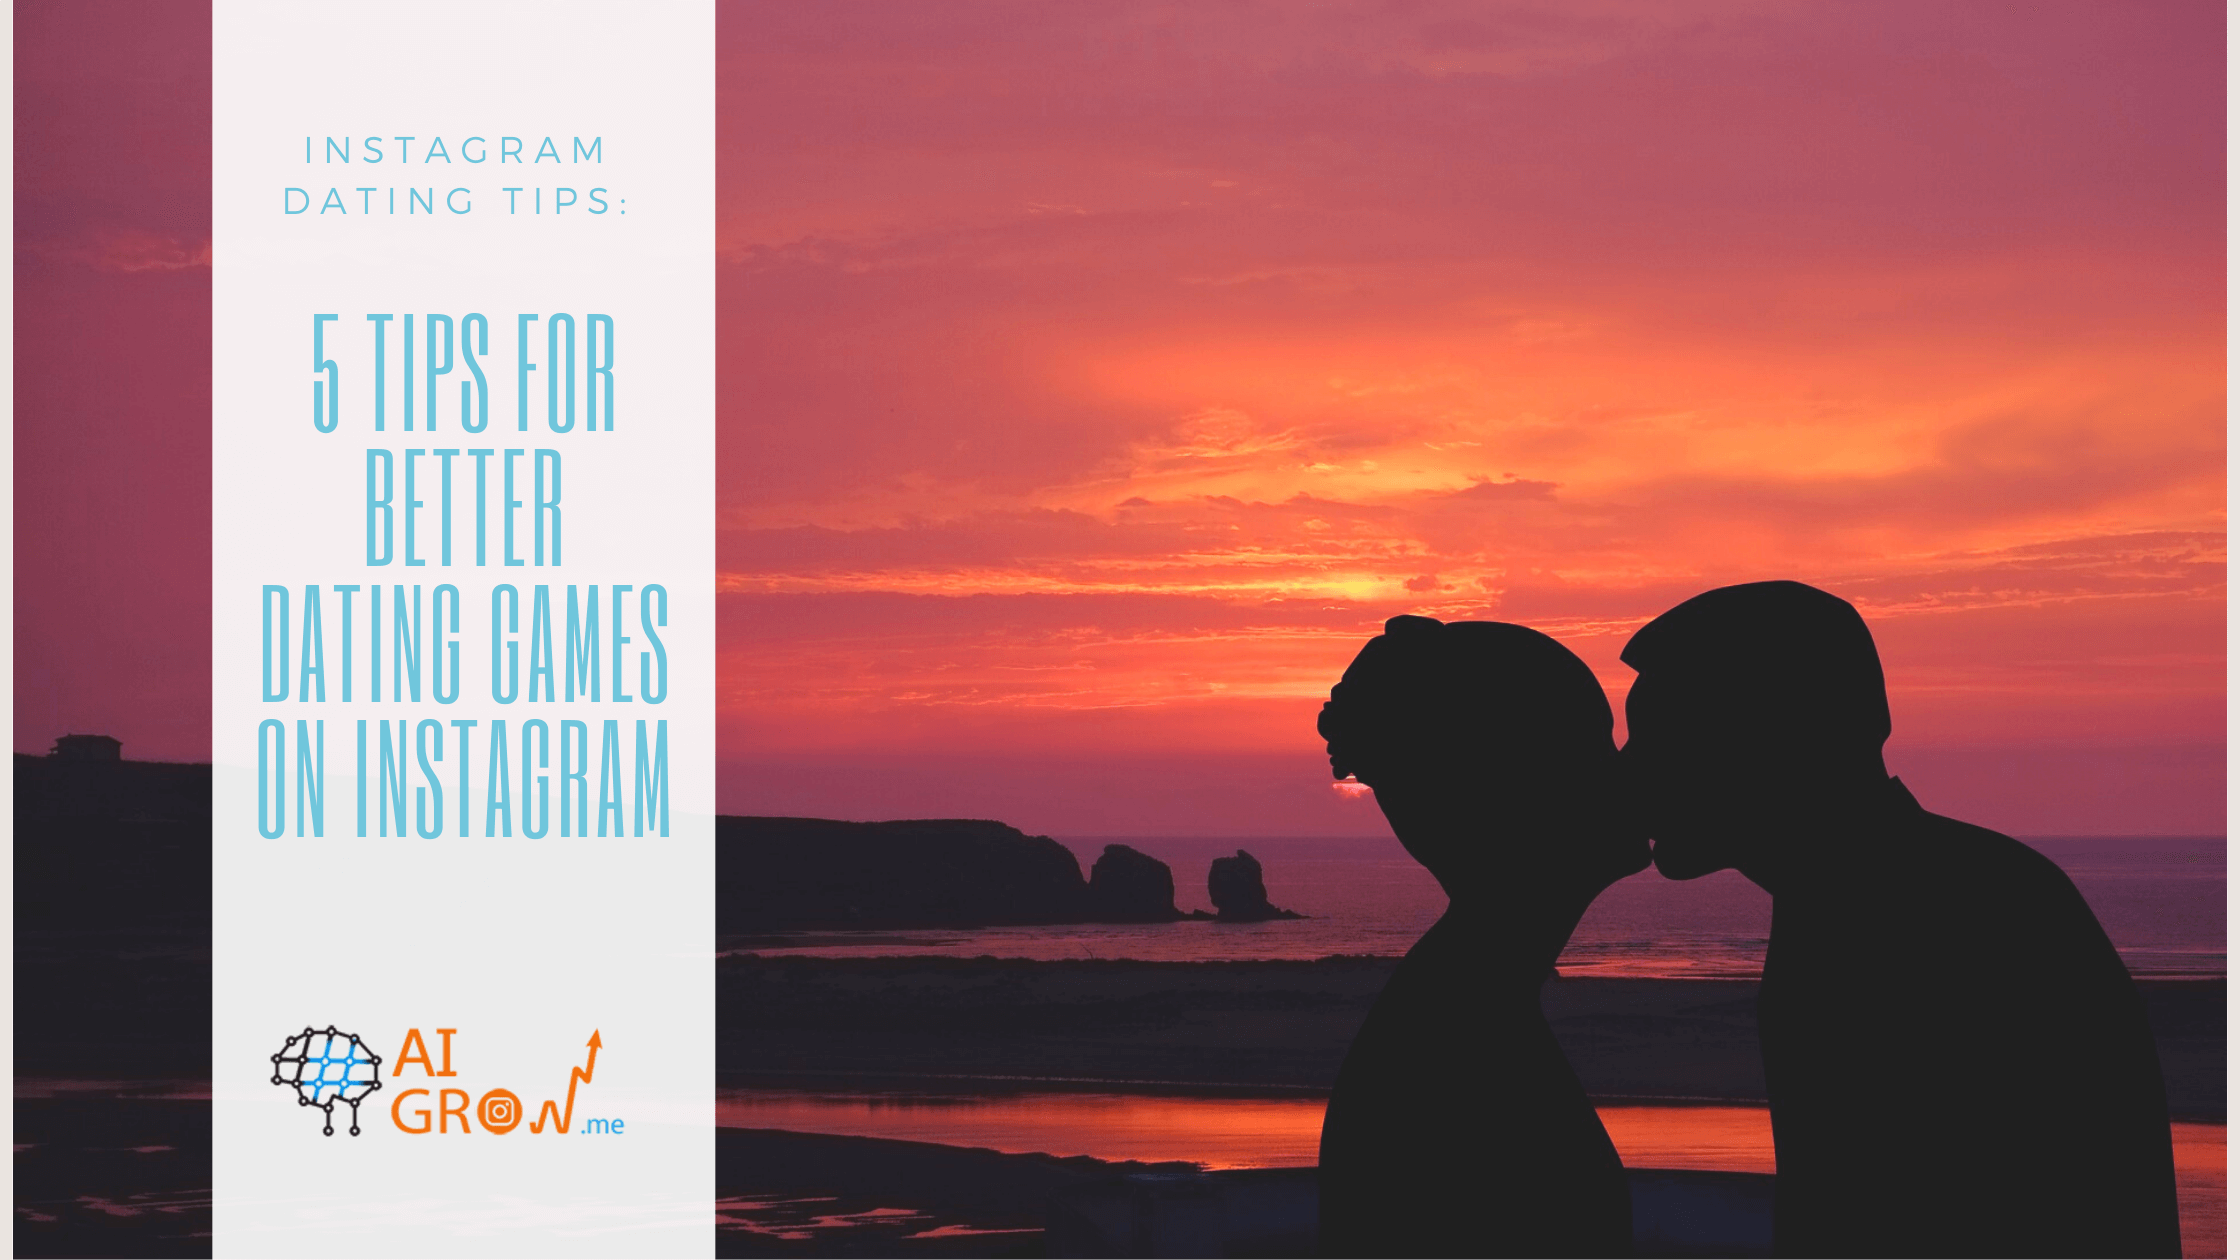 Instagram dating tips: 5 tips for better dating games on Instagram